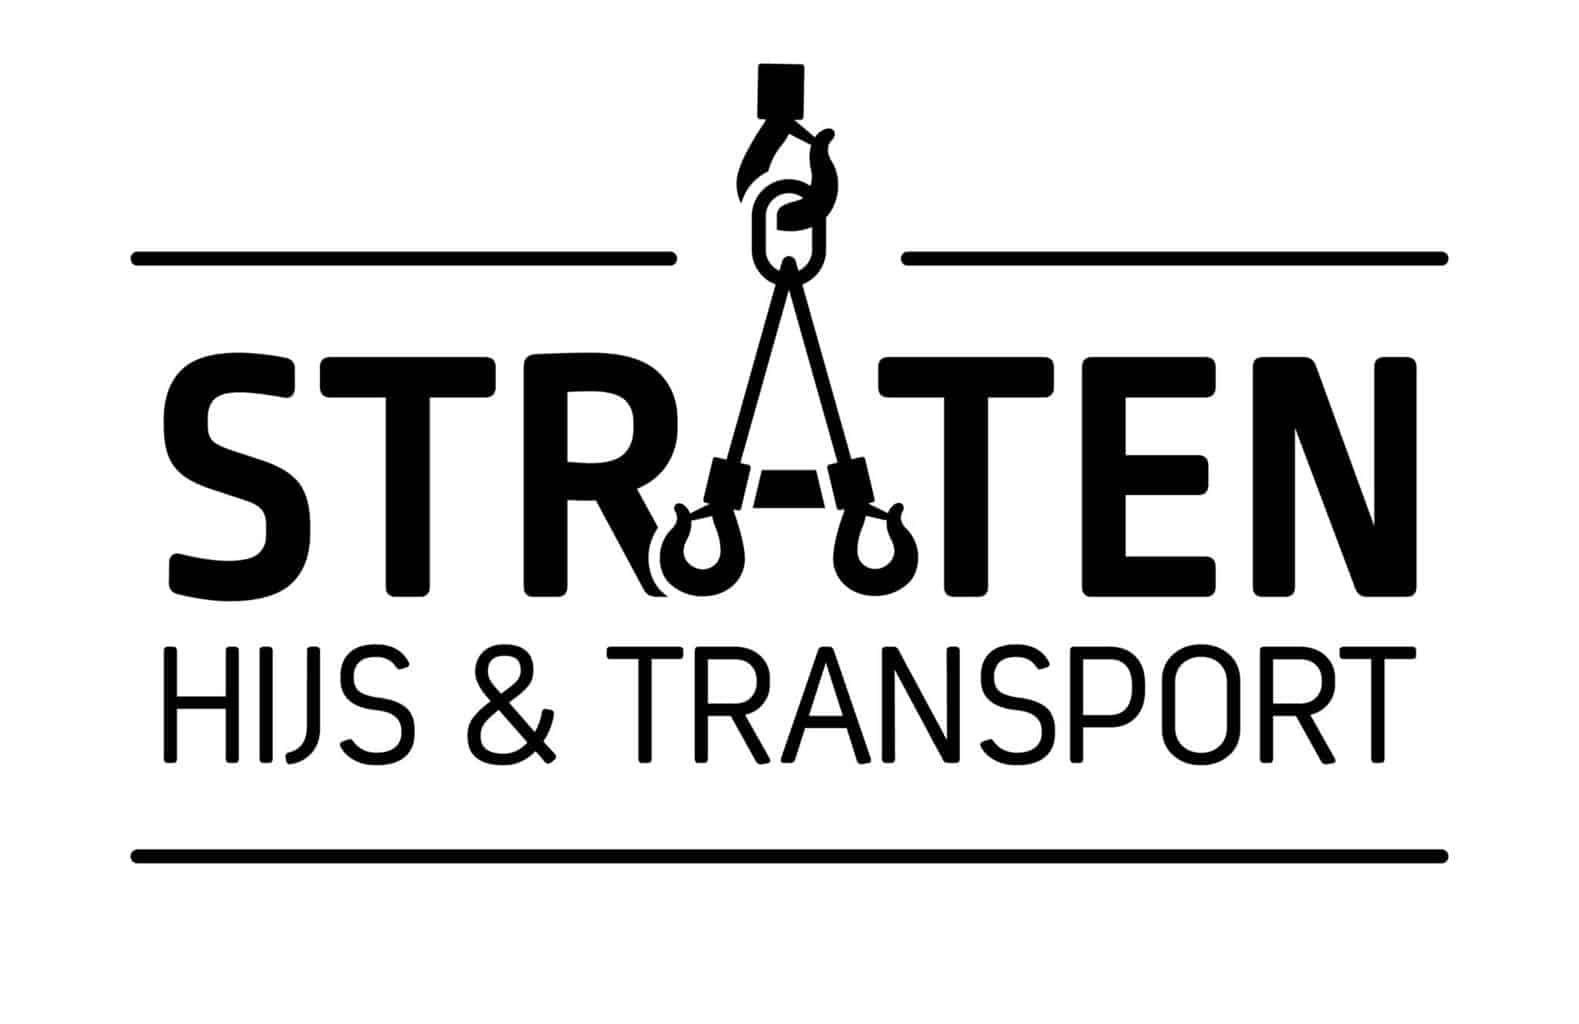 Sponsor Straten Hijs & Transport